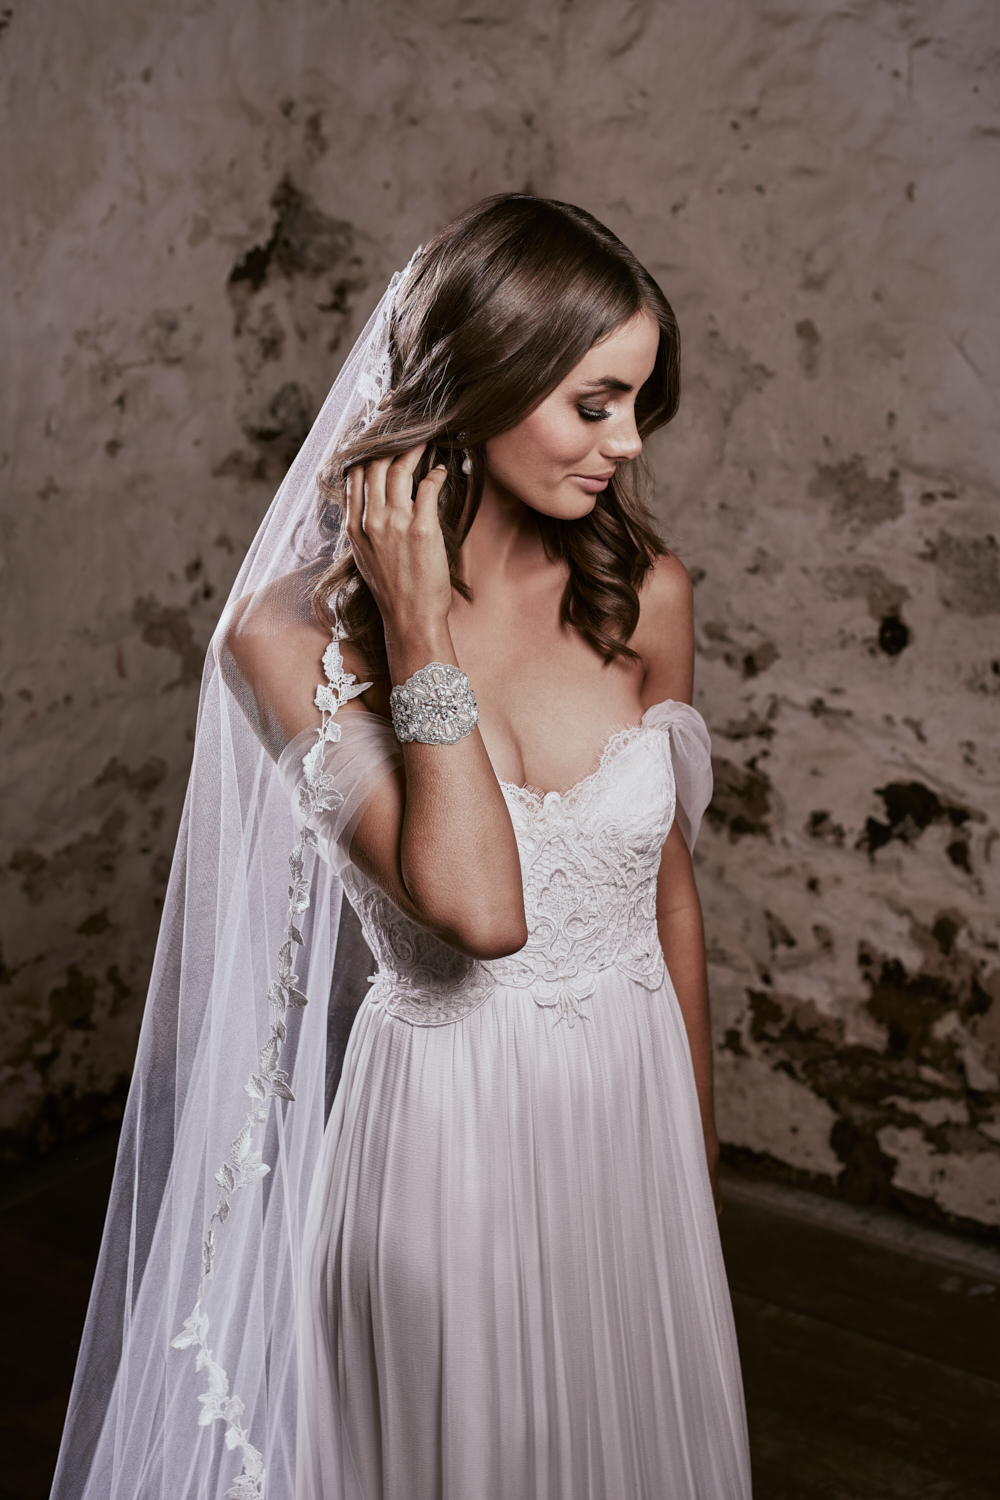 Brooklyn - Inspired by a sense of bohemian free-spiritedness and the sexiness that comes with effortless elegance, the strapless sweetheart neckline – finished with delicate ivory fringing – is both youthful and timeless. A low, exposed back, finished with the romantic Anna Campbell silk bow, injects a sense of playfulness and modernity into an otherwise classic bridal silhouette. An ivory guipure vintage lace detail at the end of the train adds an unexpected and unique finishing touch.Style with detachable, off-the-shoulder silk tulle sleeves for a different reception and ceremony look.